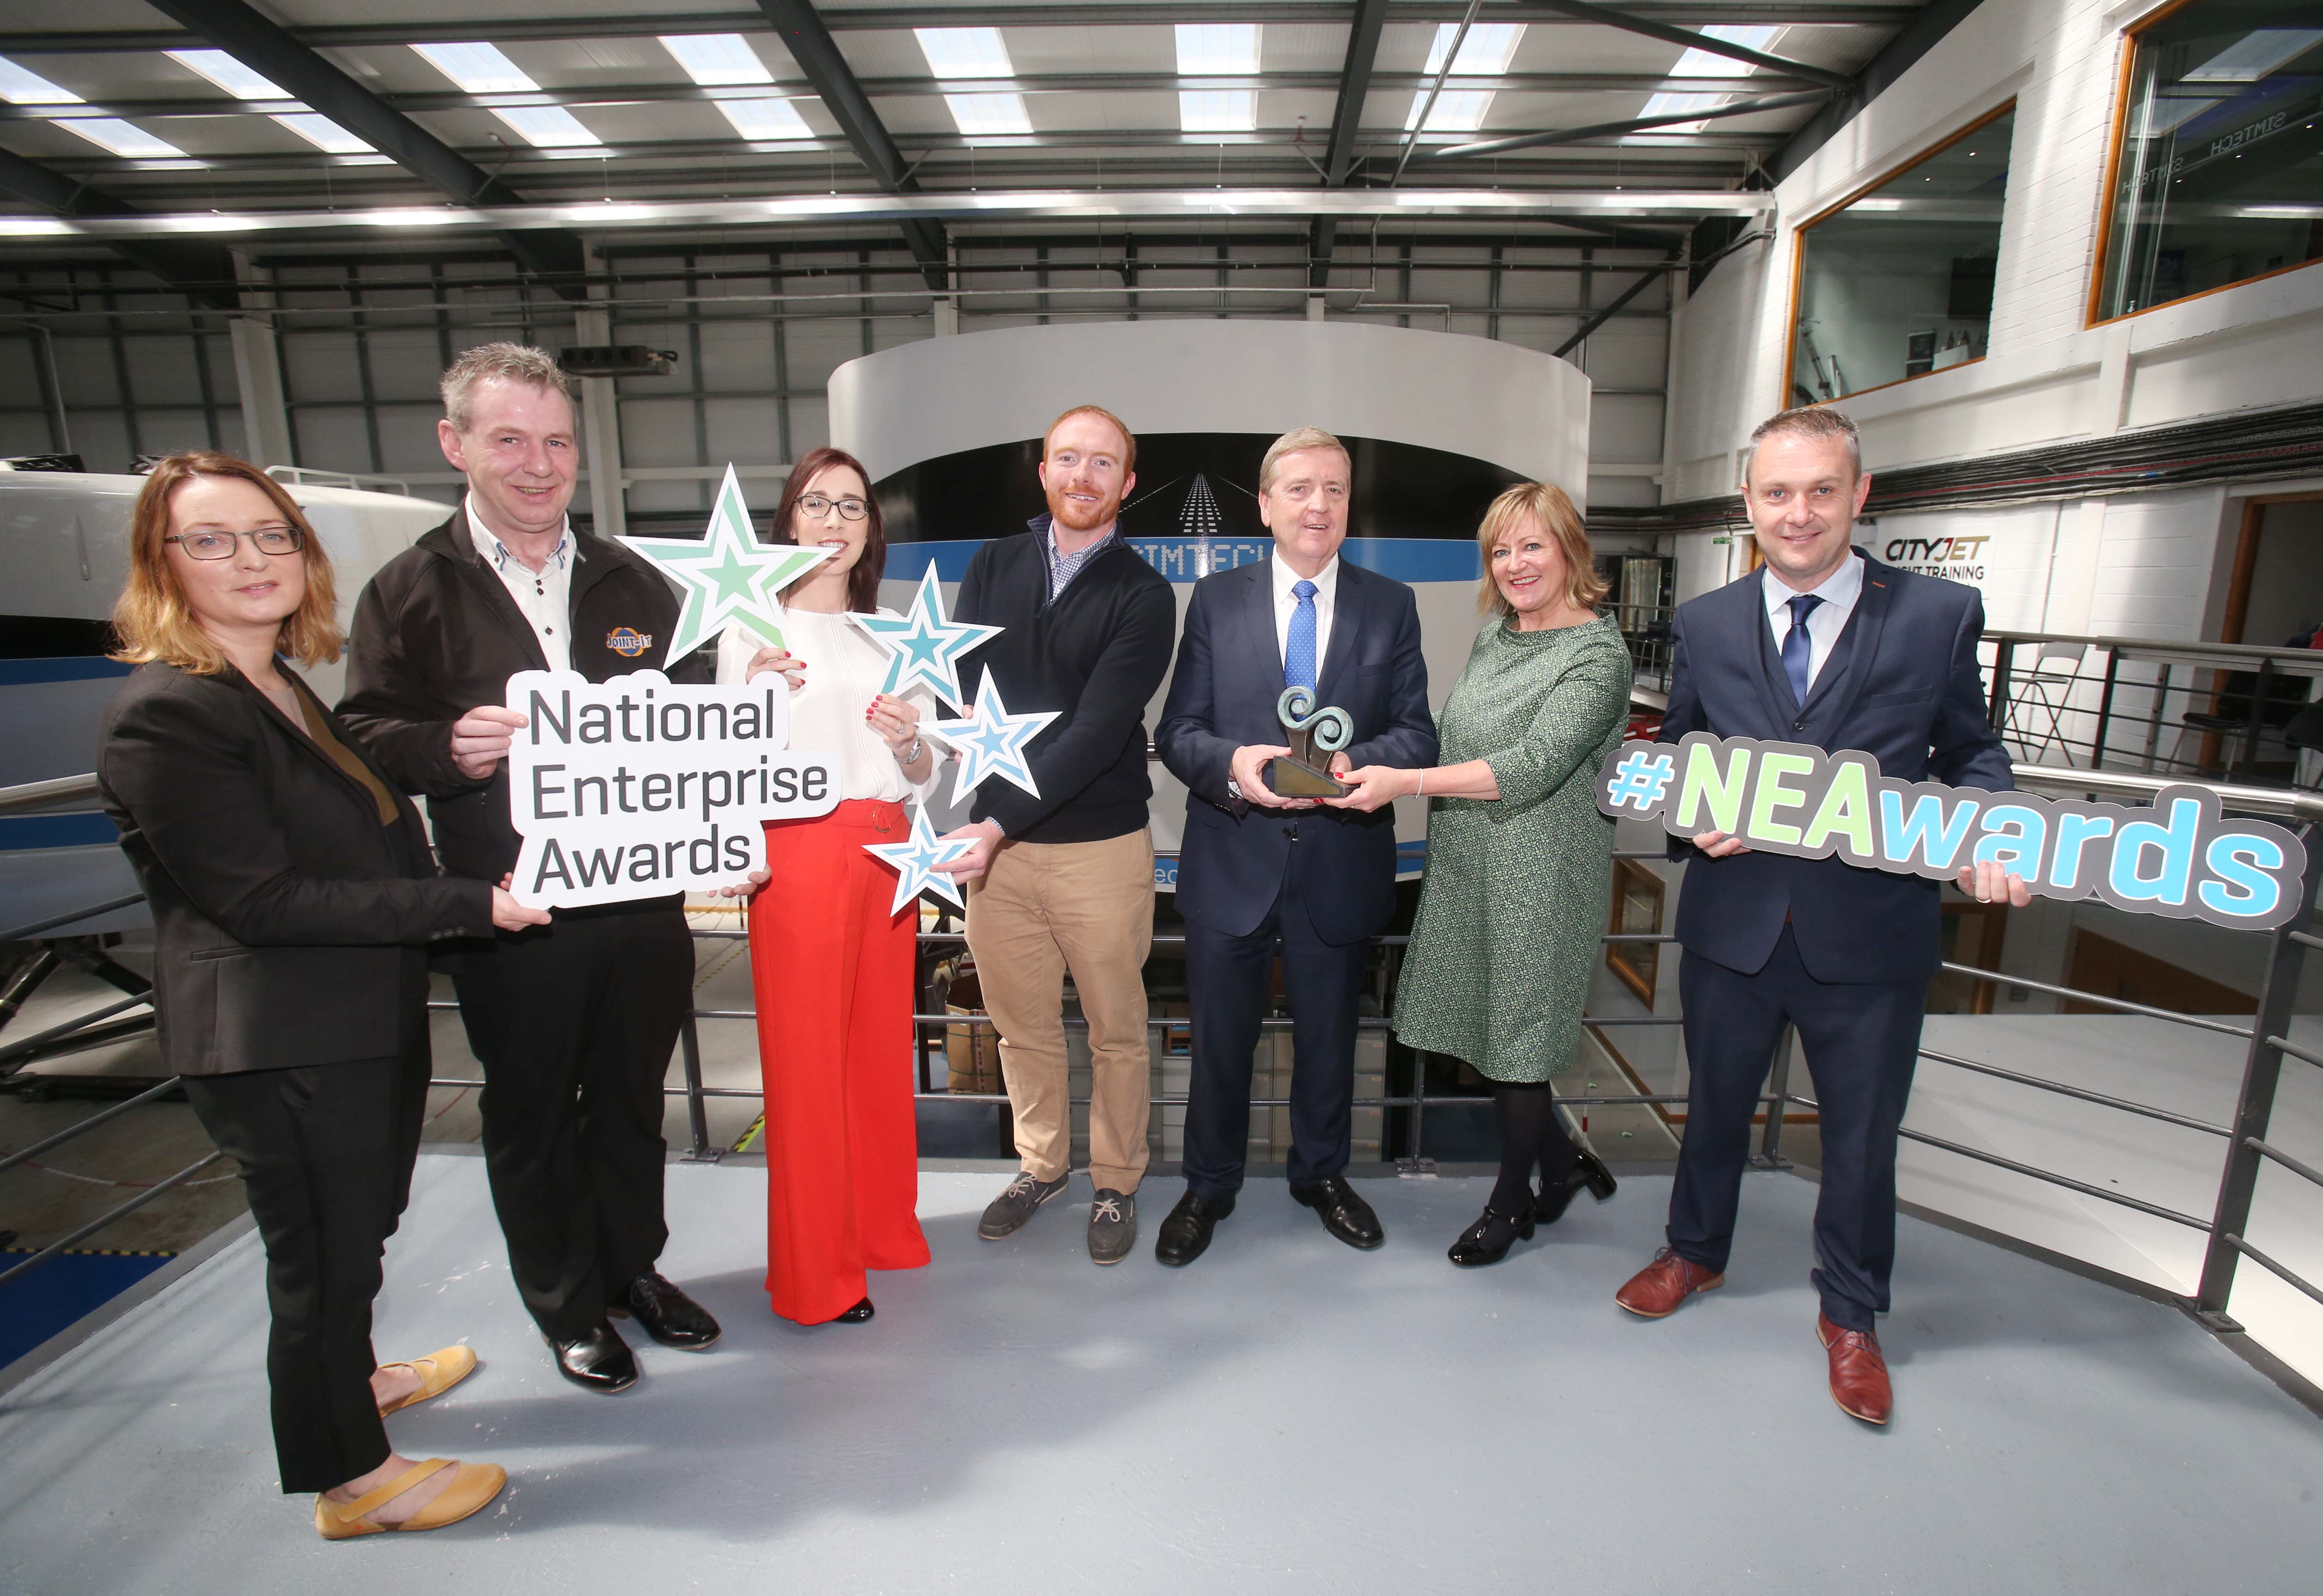 20 years of Winners for National Enterprise Awards 2018